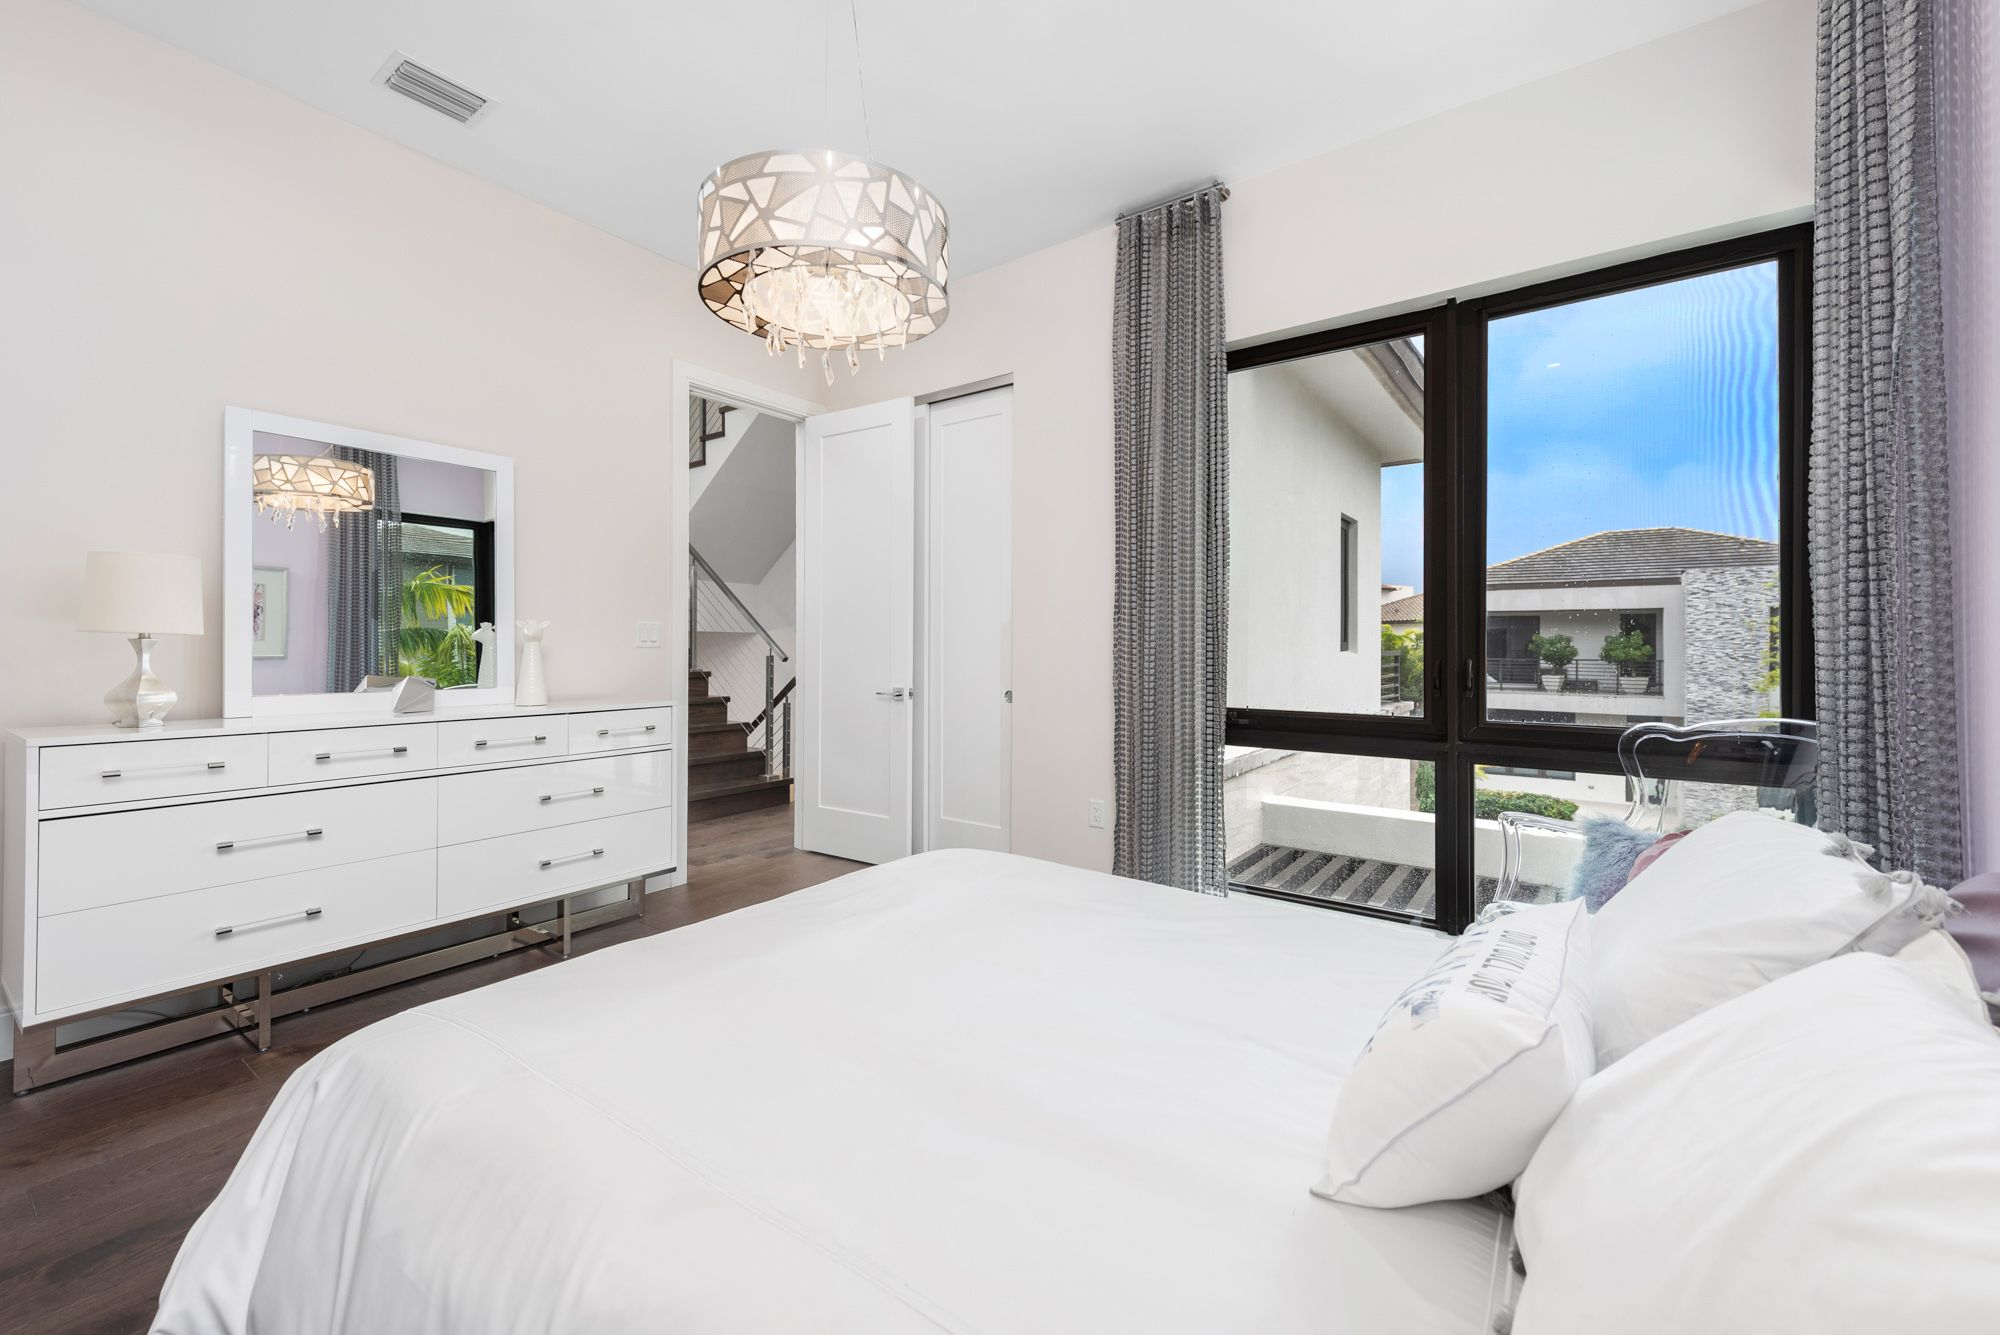 Bedroom featured in the Capri A Three Story By CC Homes in Miami-Dade County, FL